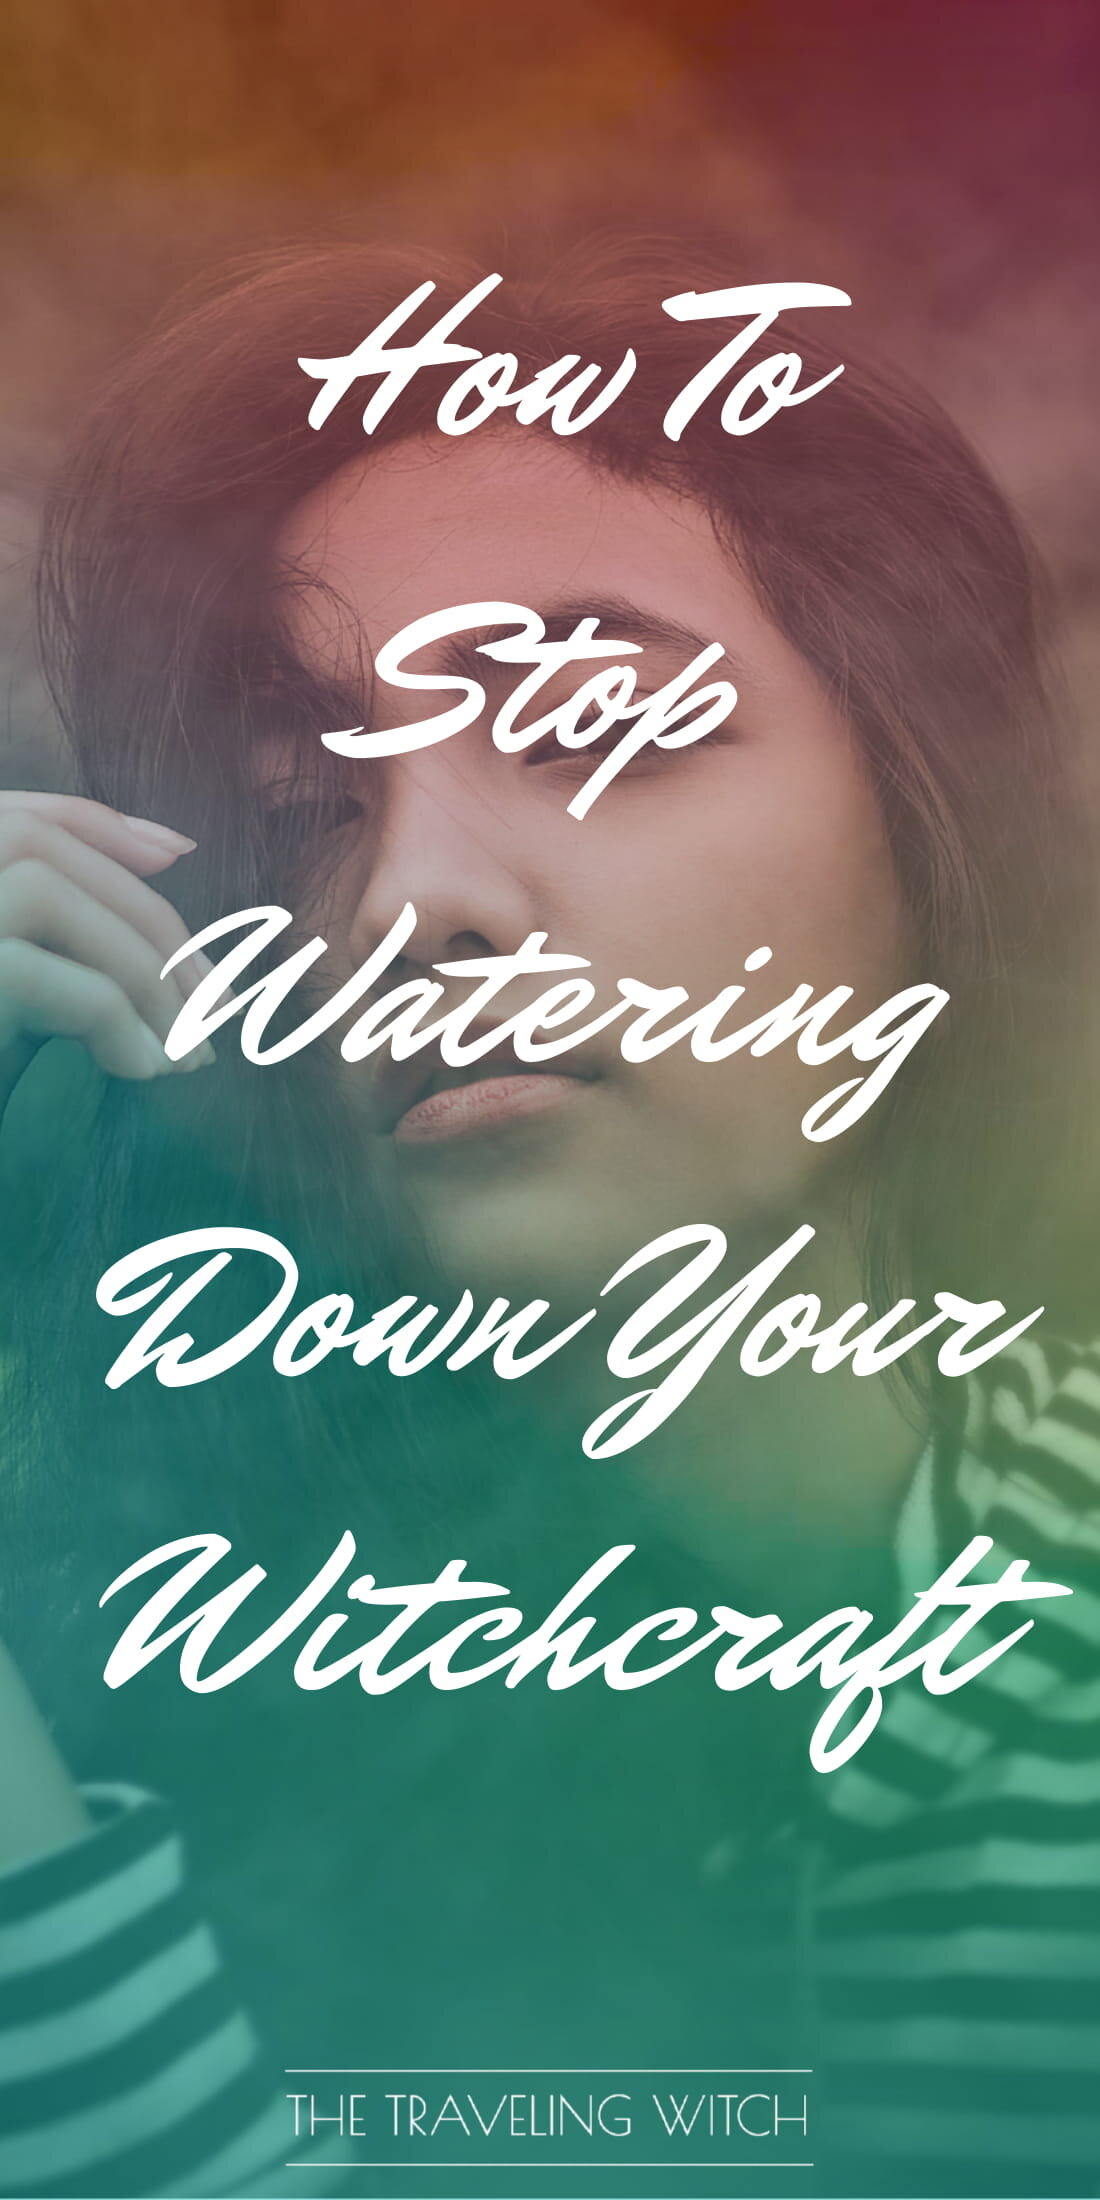 How To Stop Watering Down Your Witchcraft by The Traveling Witch #Witchcraft #Magic